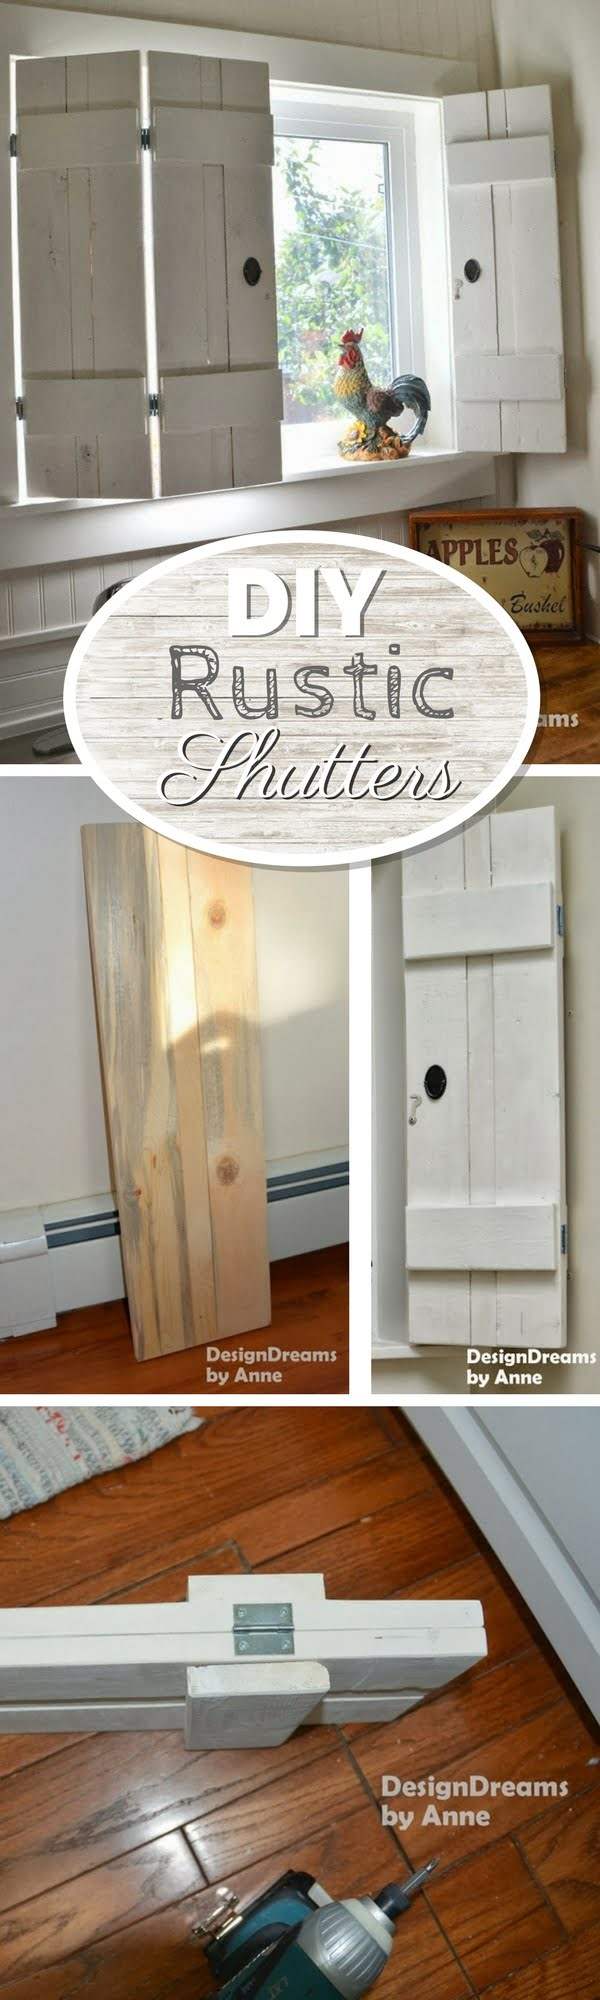 How to build easy DIY rustic window shutters